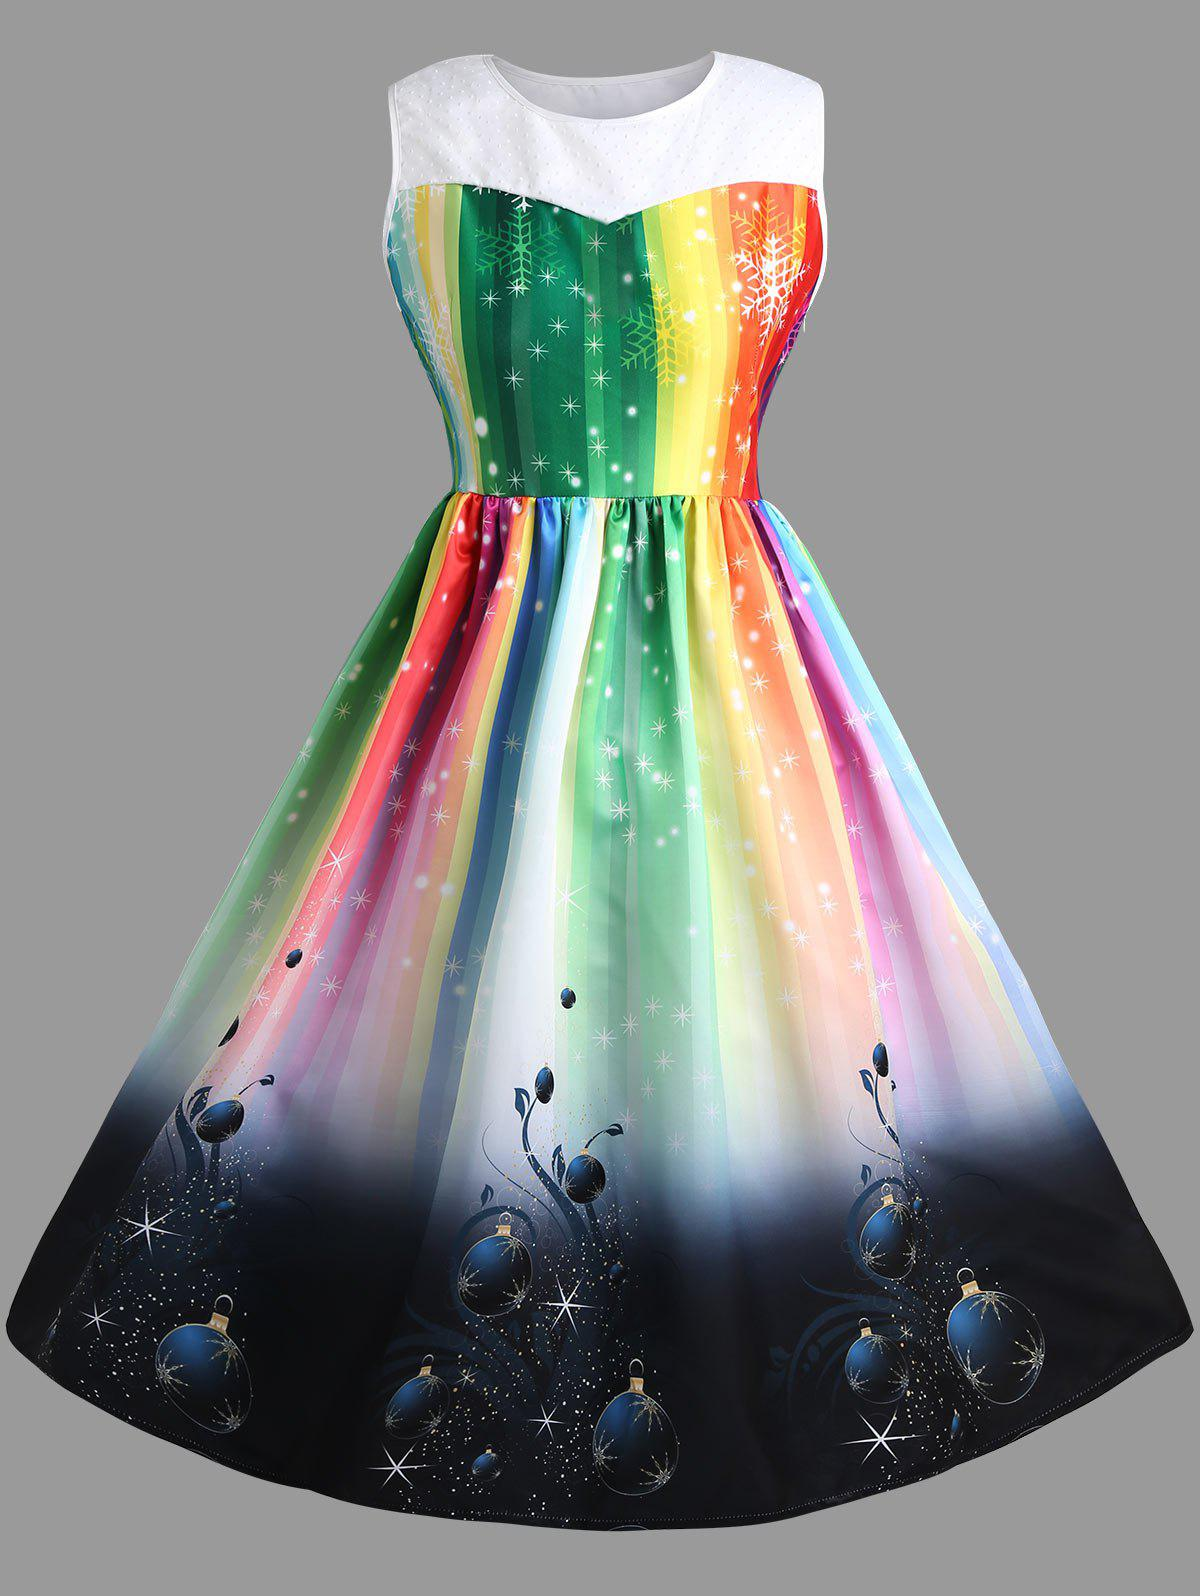 Sleeveless Rainbow  Plus Size Midi Christmas DressWOMEN<br><br>Size: XL; Color: COLORFUL; Style: Vintage; Material: Polyester; Silhouette: Ball Gown; Dresses Length: Mid-Calf; Neckline: Round Collar; Sleeve Length: Sleeveless; Waist: High Waisted; Pattern Type: Print; With Belt: No; Season: Fall,Winter; Weight: 0.5900kg; Package Contents: 1 x Dress;